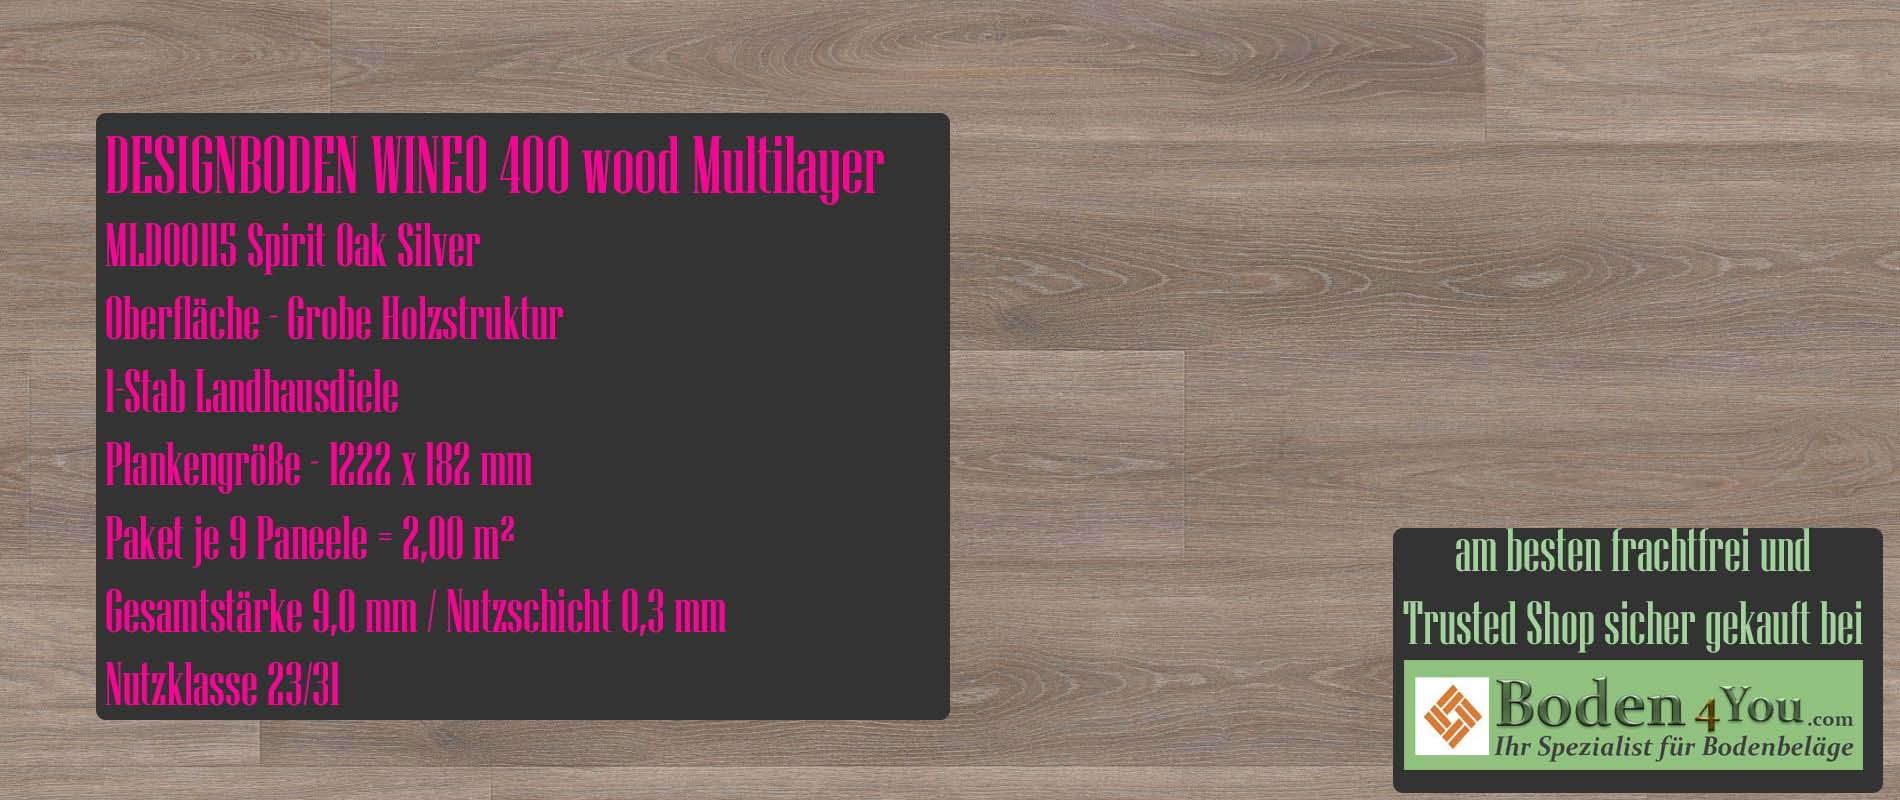 Wineo 400 Multilayer Energy Oak Warm @ Boden4You.com Design Bodenbelag günstig und Trsuted Shop sicher kaufen